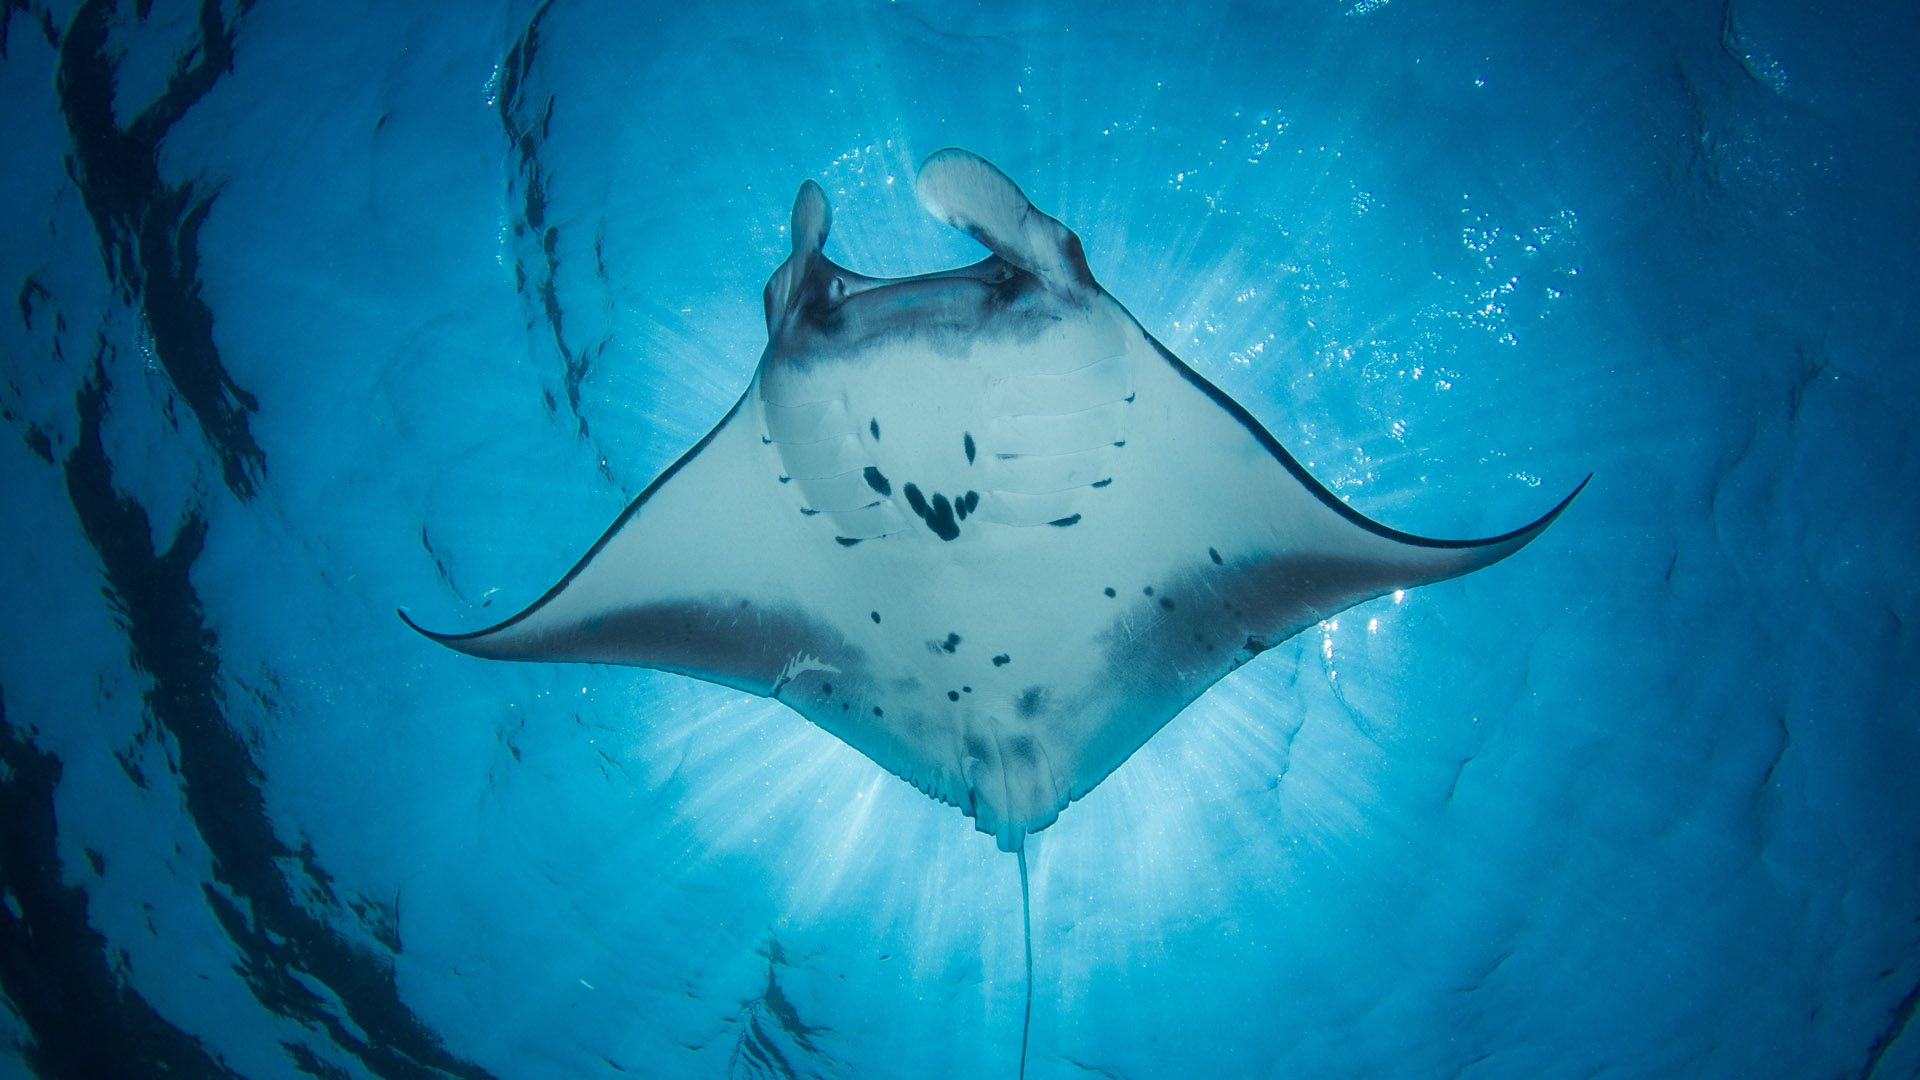 A manta ray in the ocean